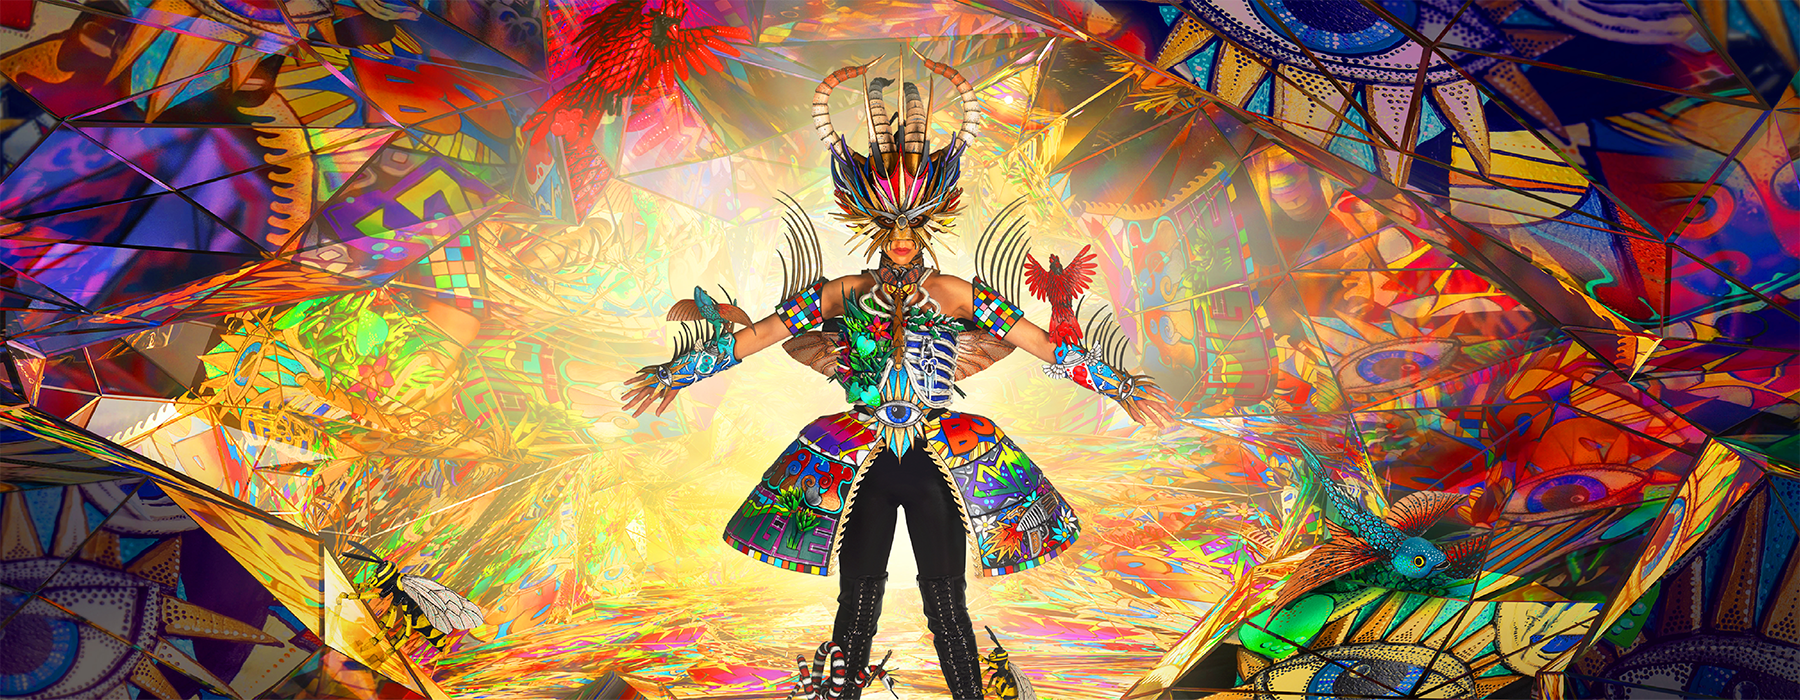 Colourful stage with a person in costume in the centre